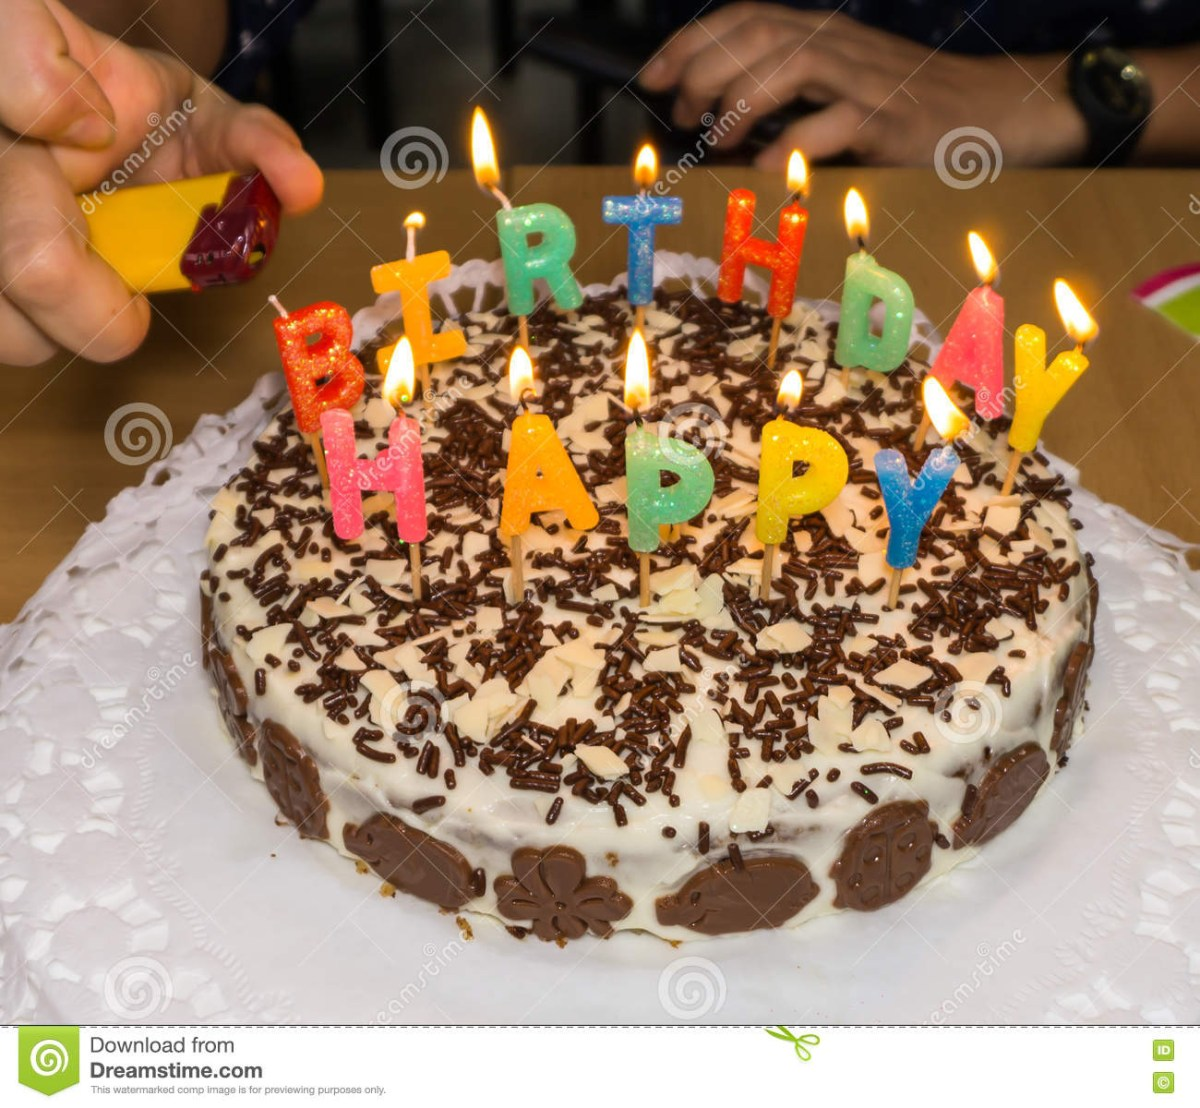 Pleasant Homemade Birthday Cakes Candlelight Homemade Birthday Cake Fire Personalised Birthday Cards Veneteletsinfo